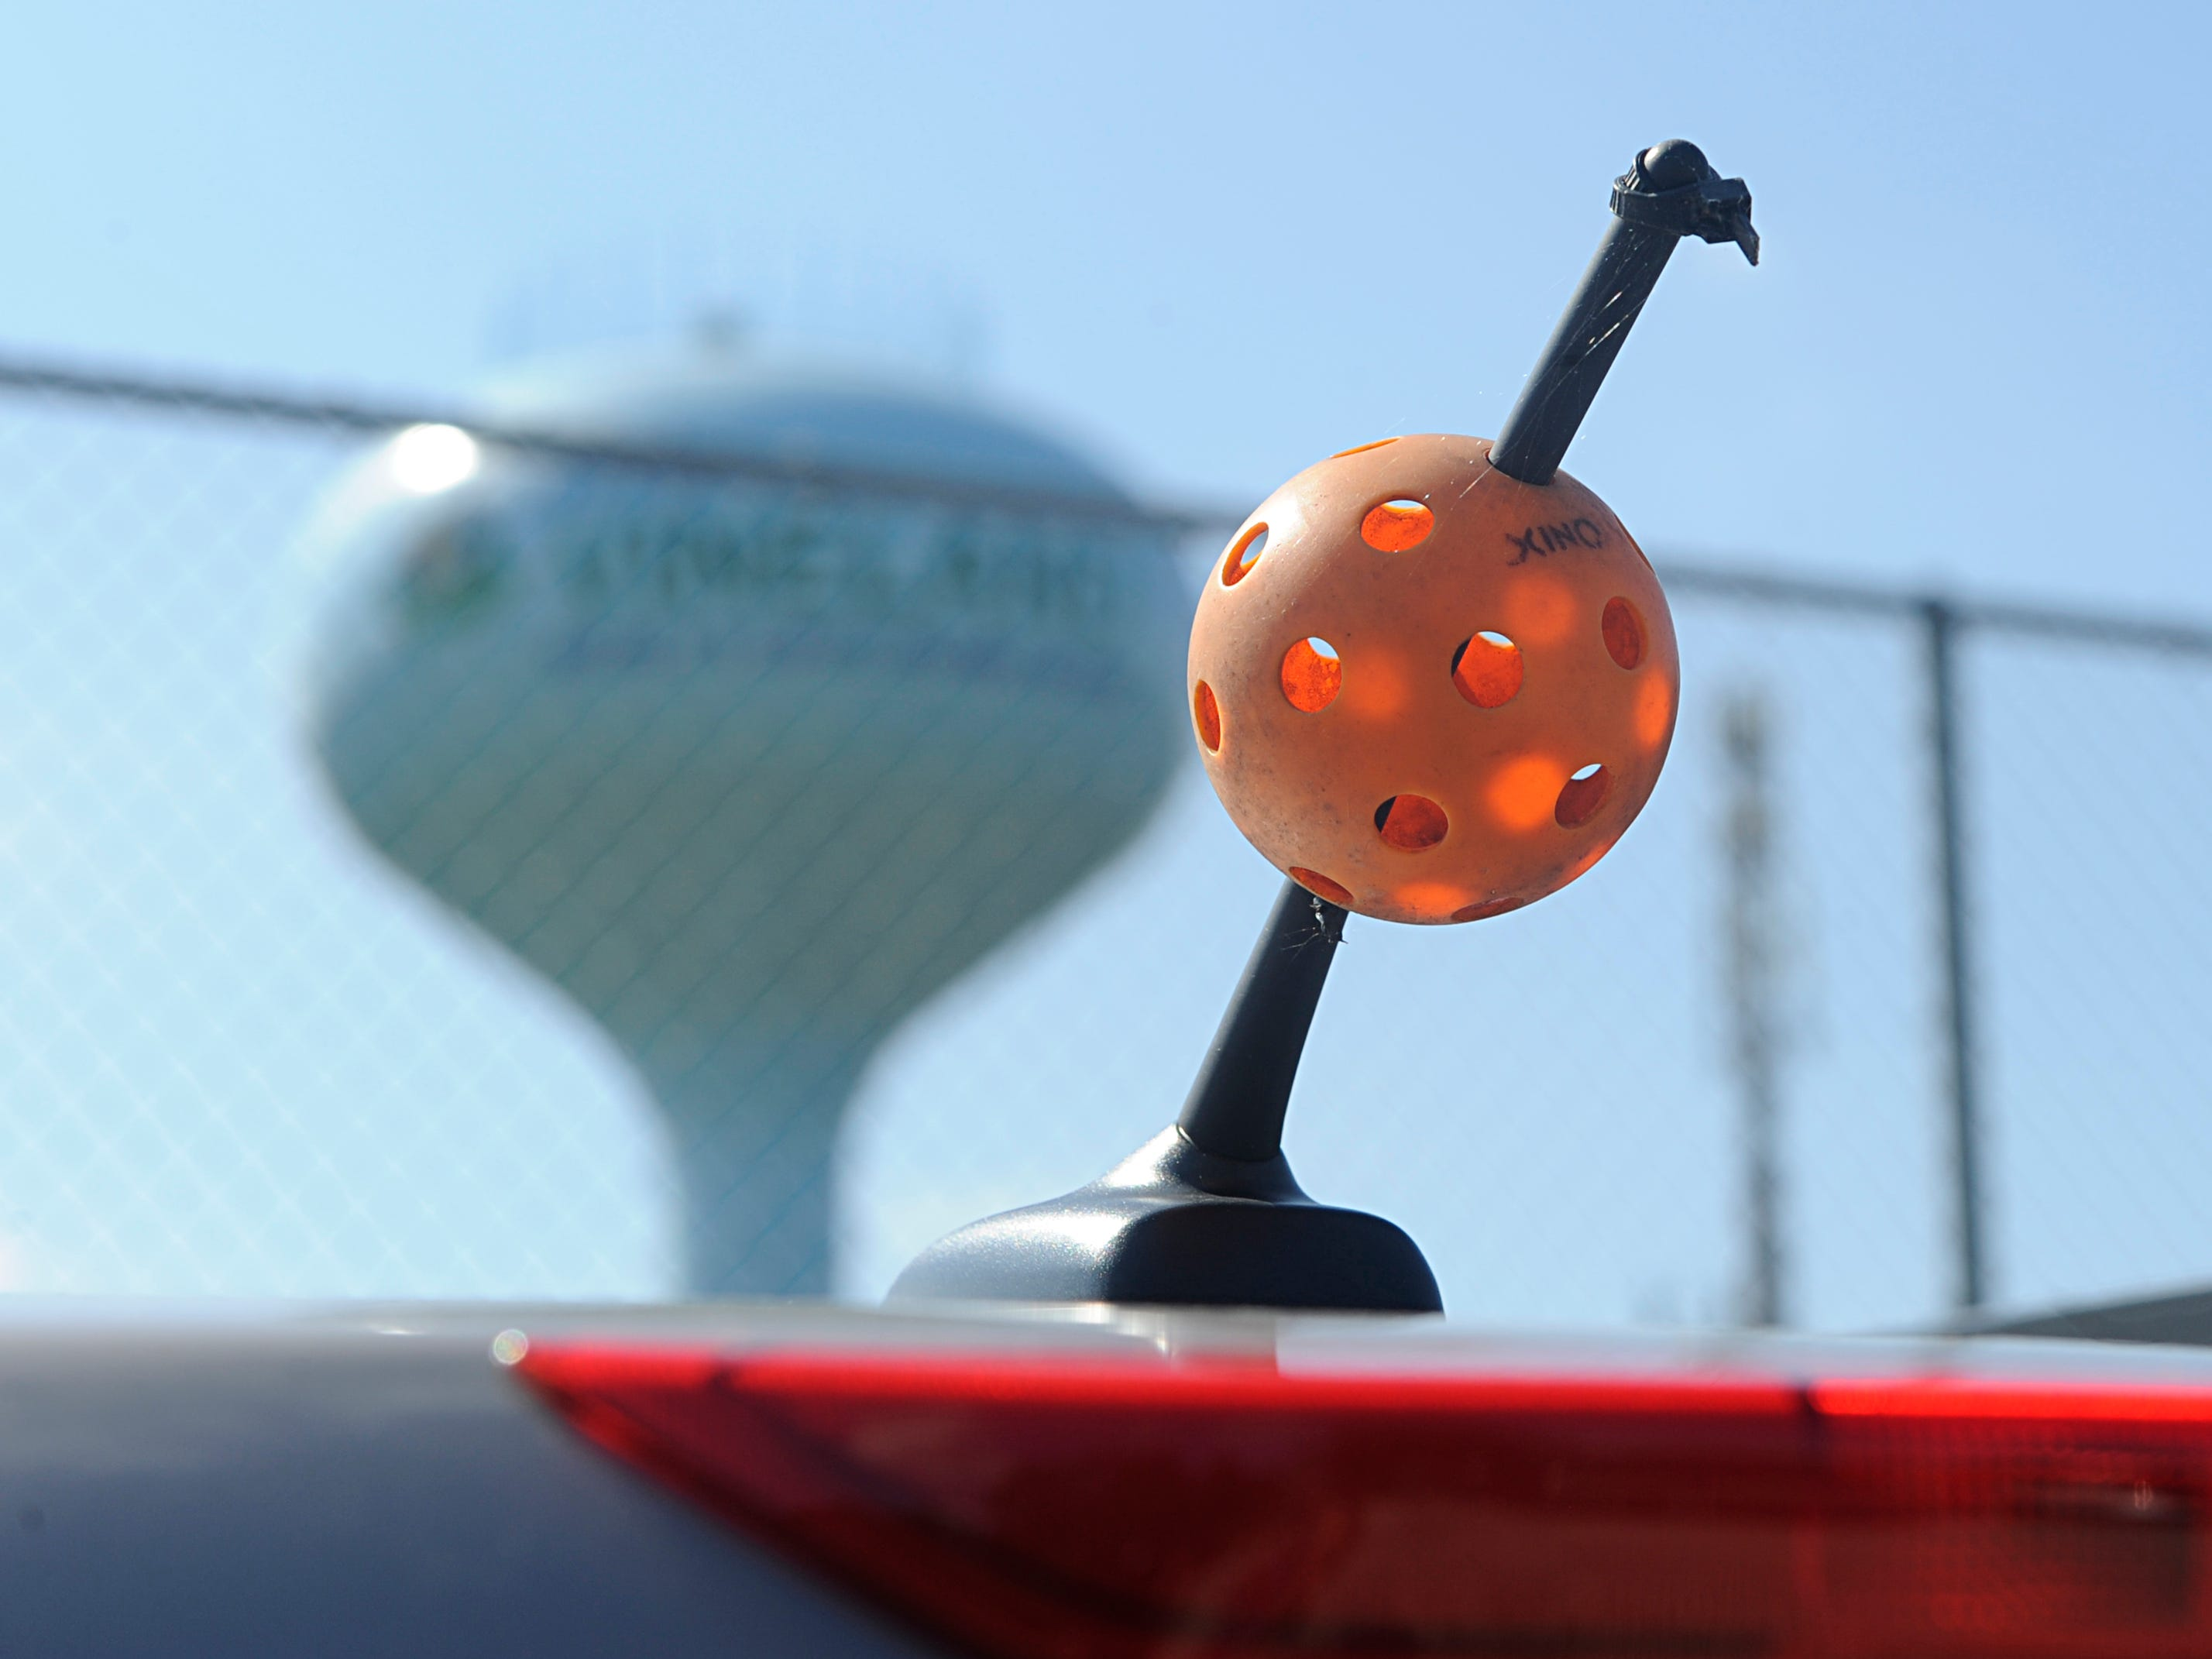 A pickleball adorns a car antenna at Pagluighi Park on Wednesday, October 3, 2018.